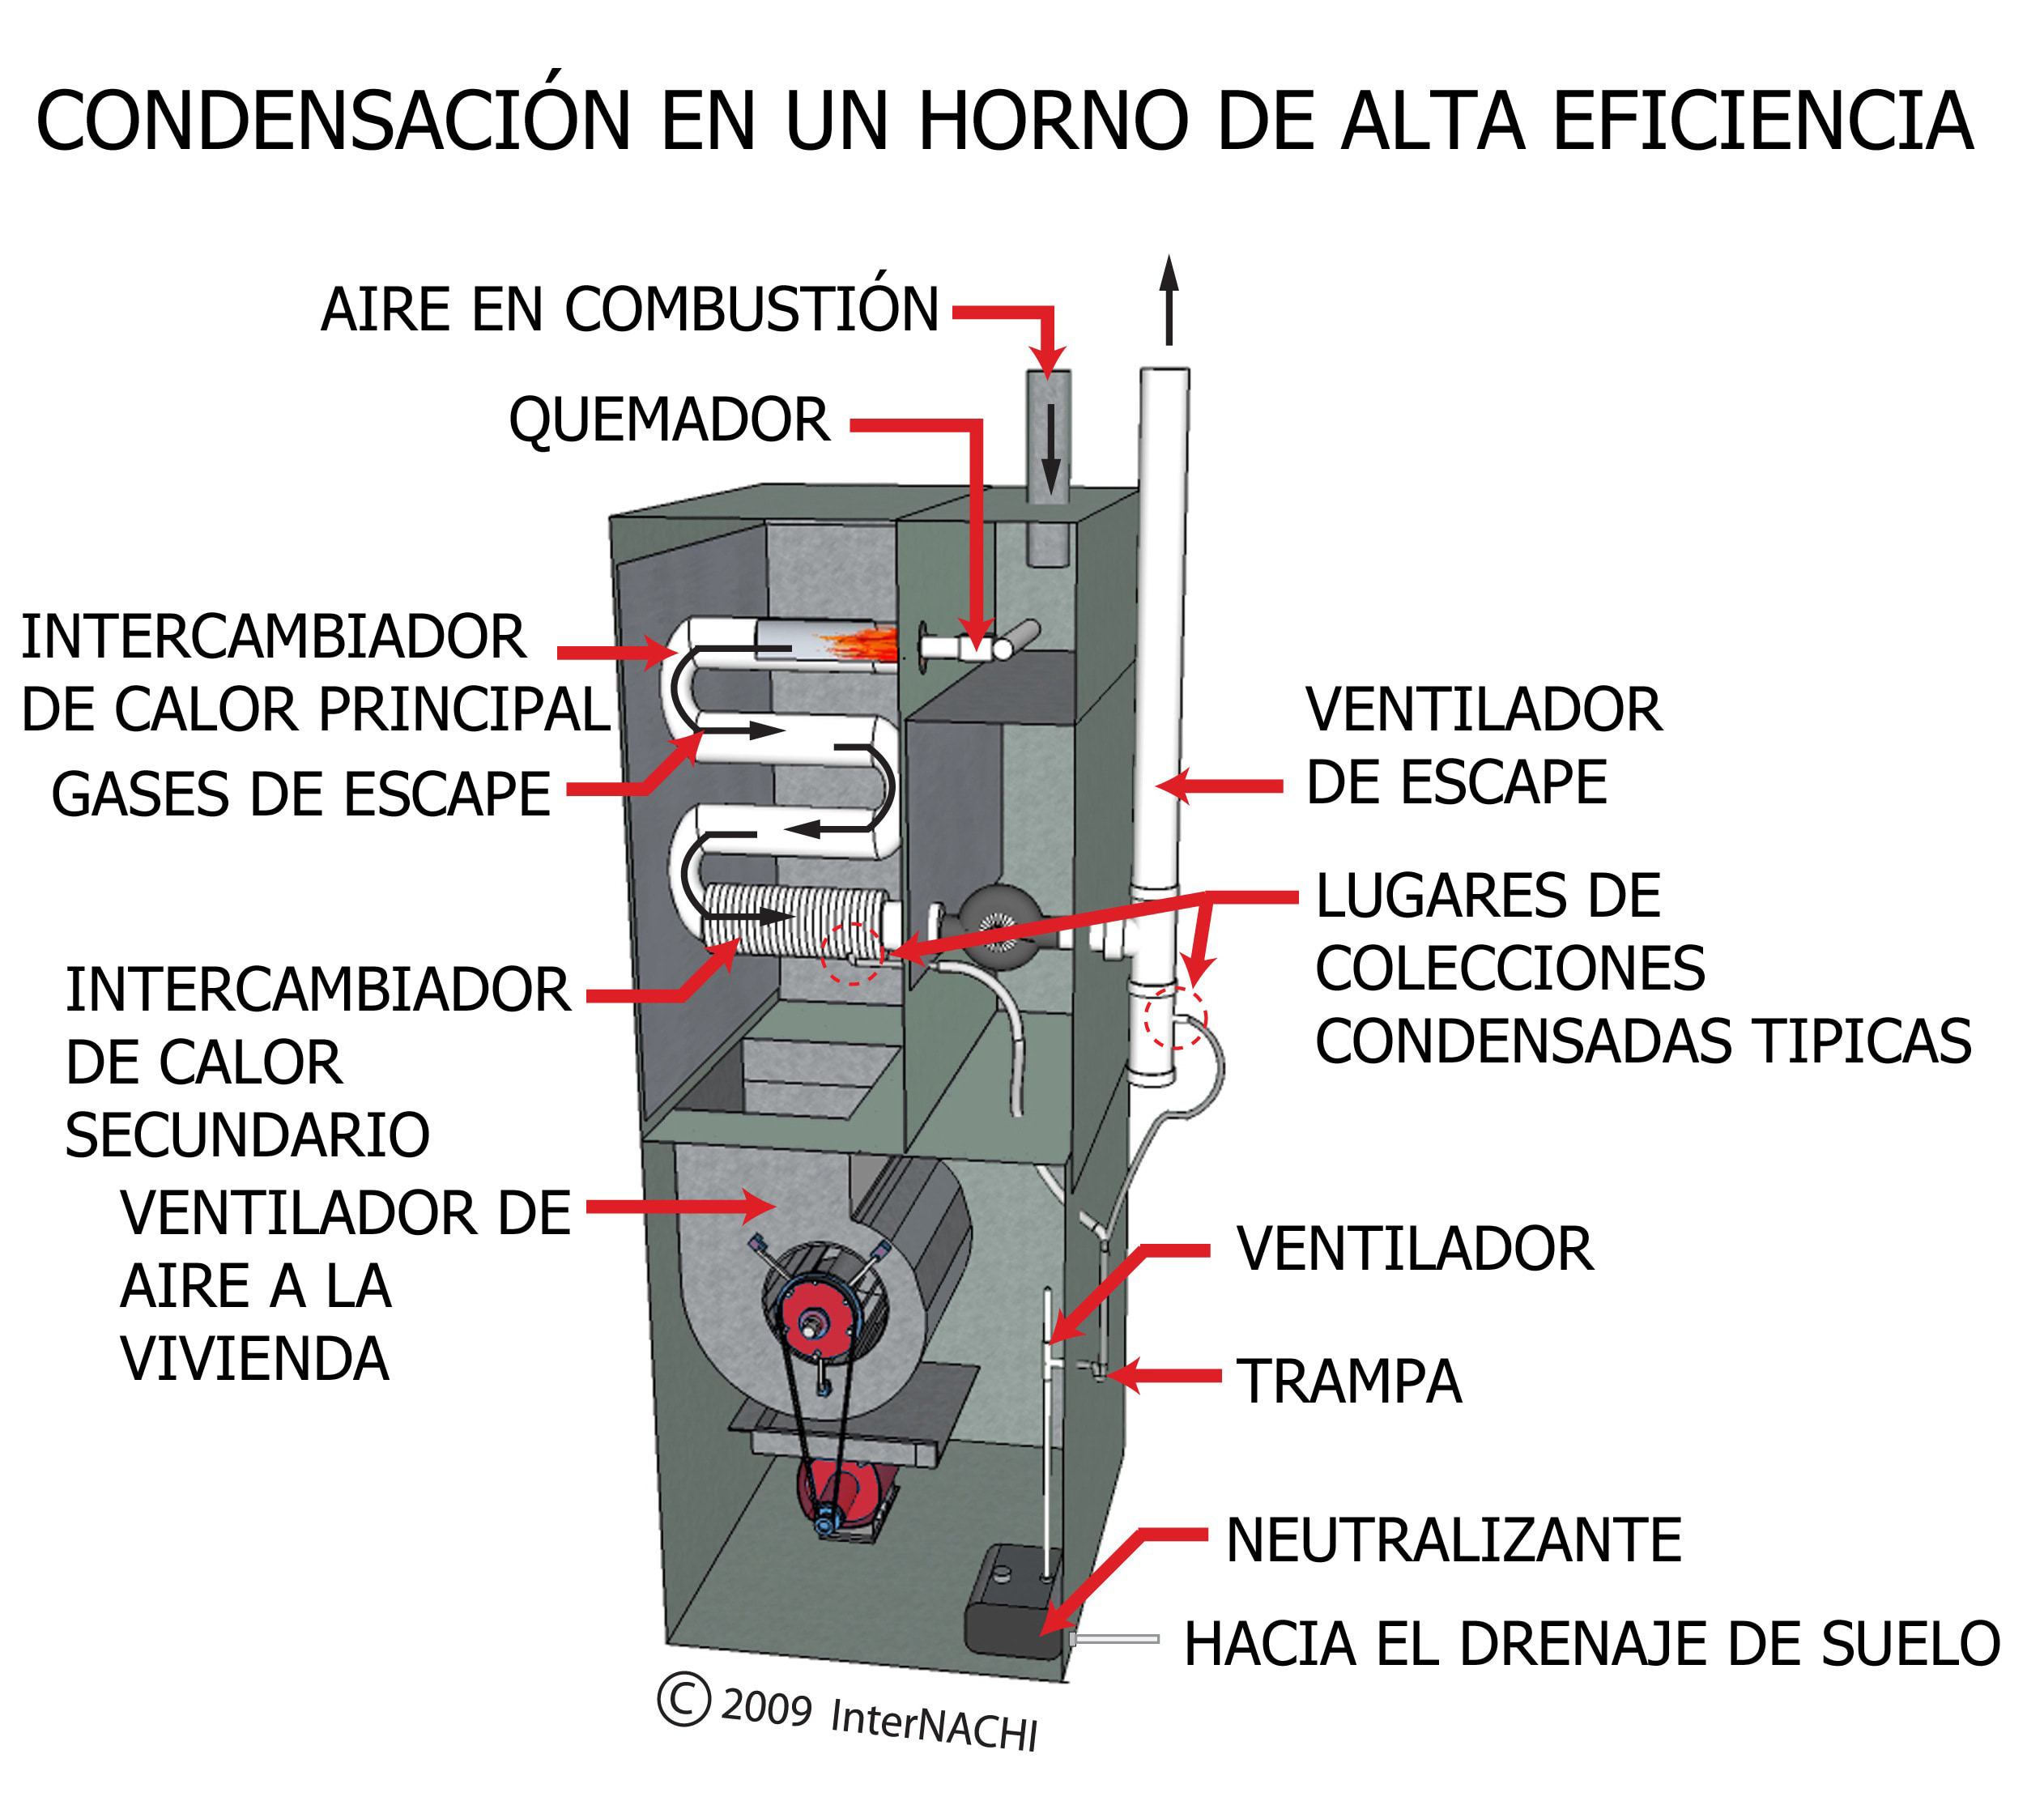 Condensation in a high efficiency furnace.